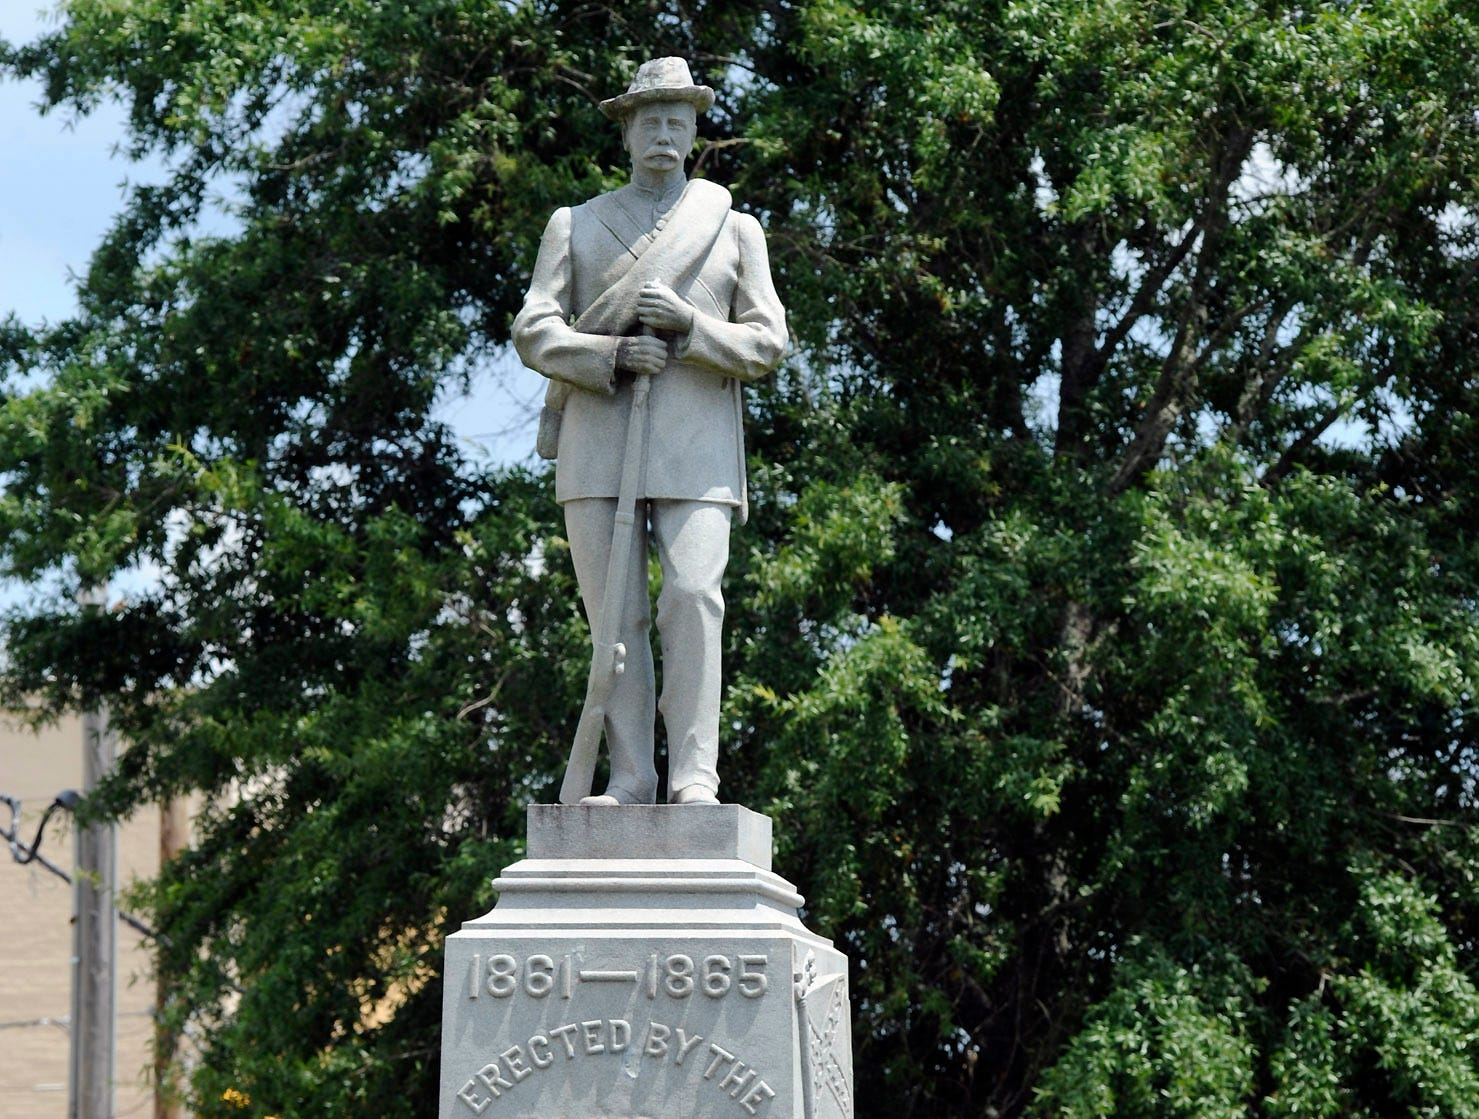 Judge overturns Alabama law that protects Confederate monuments